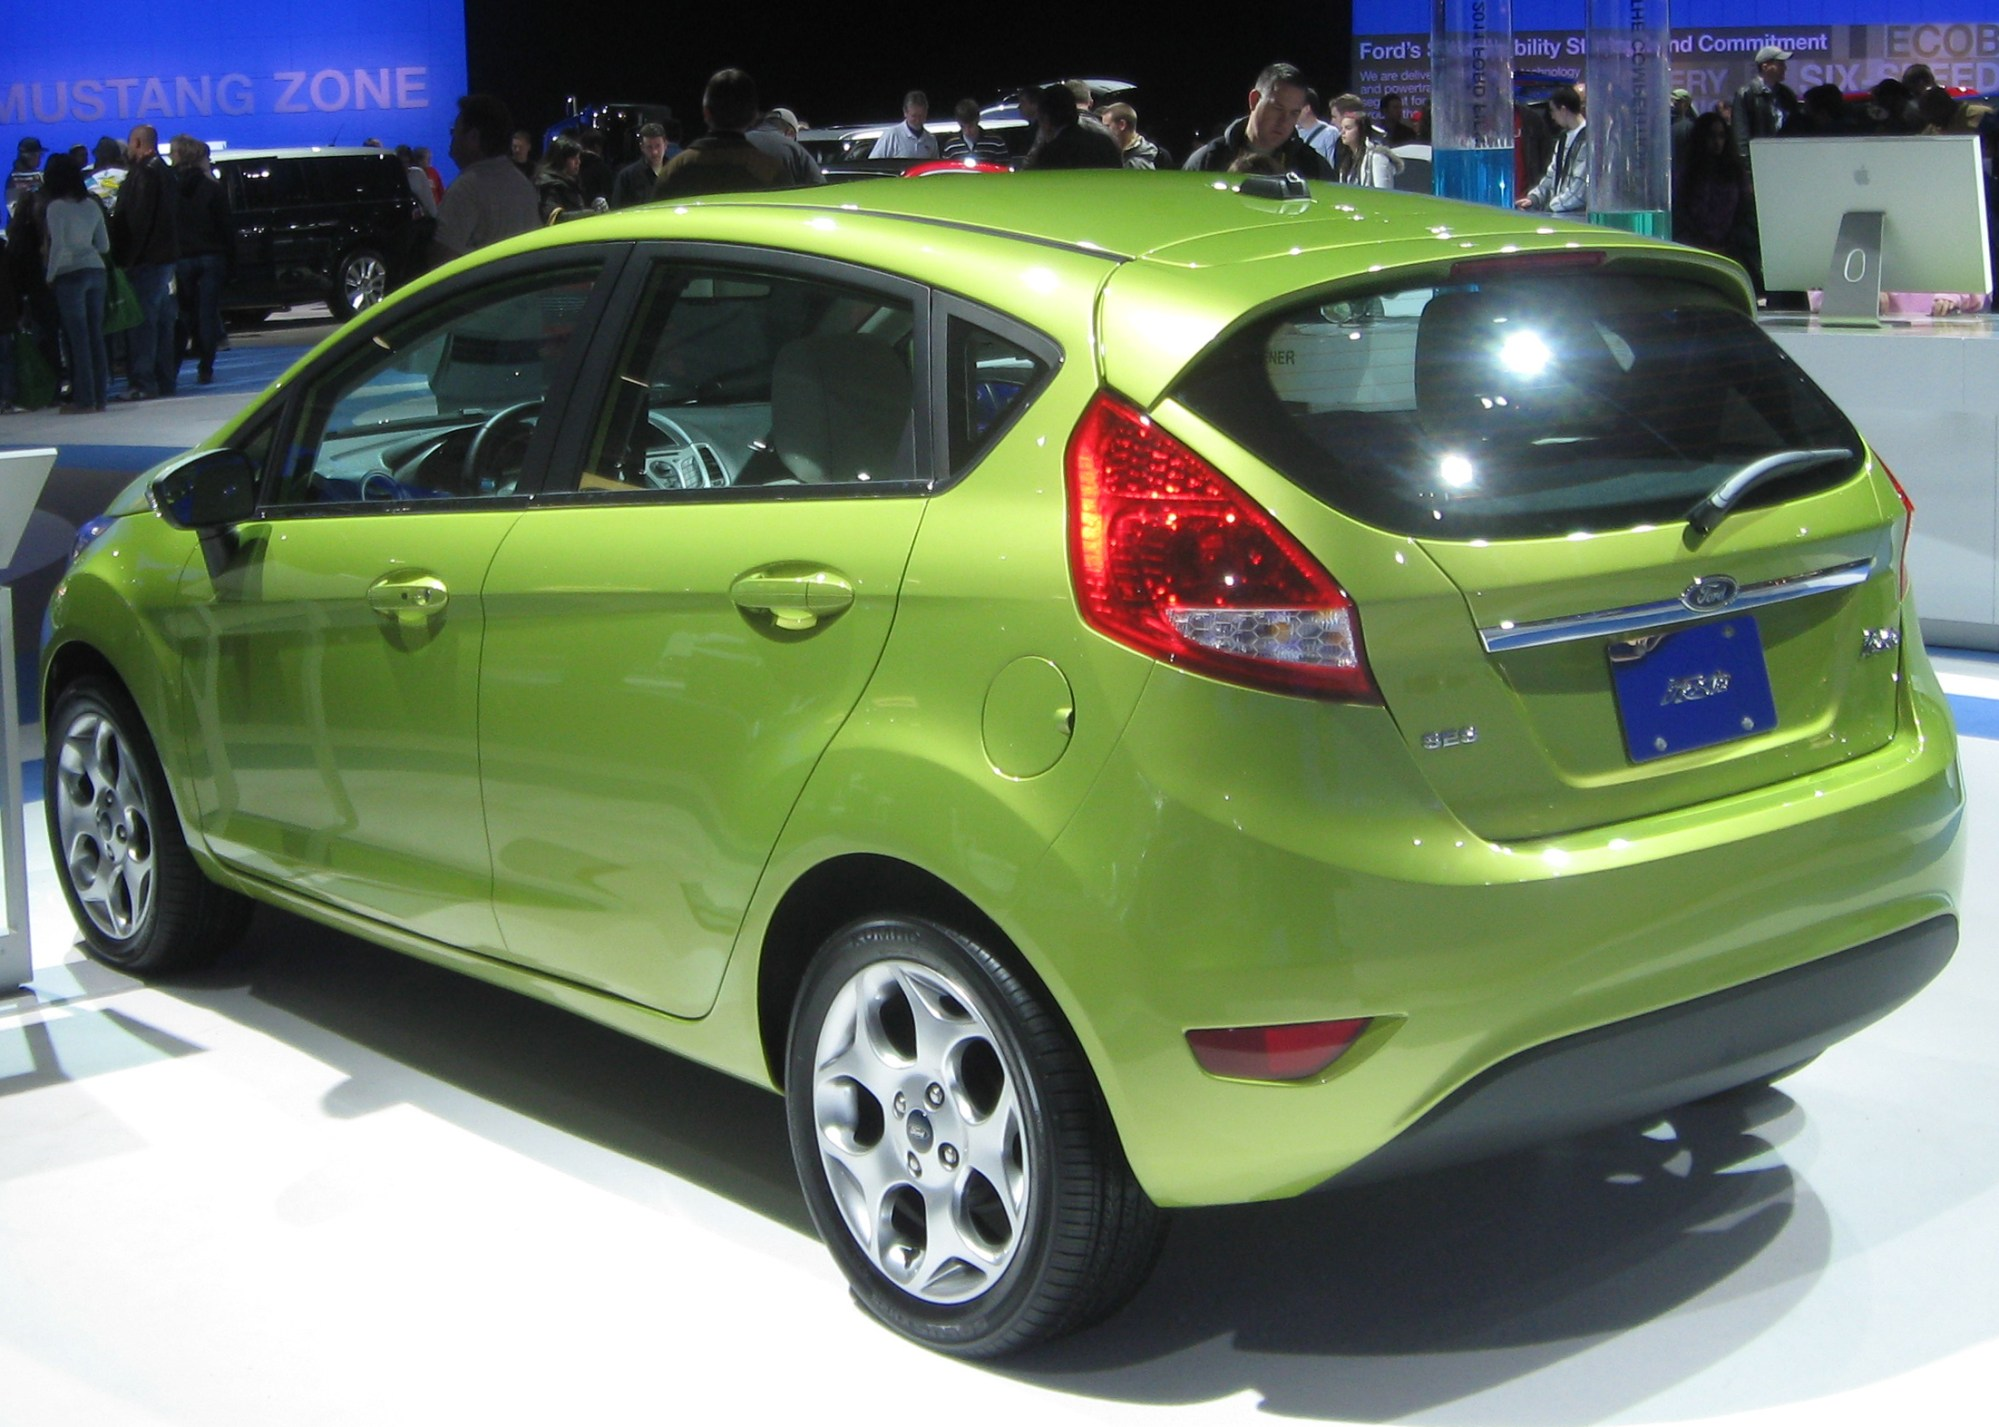 hight resolution of file 2011 ford fiesta ses hatch rear 2010 dc jpg